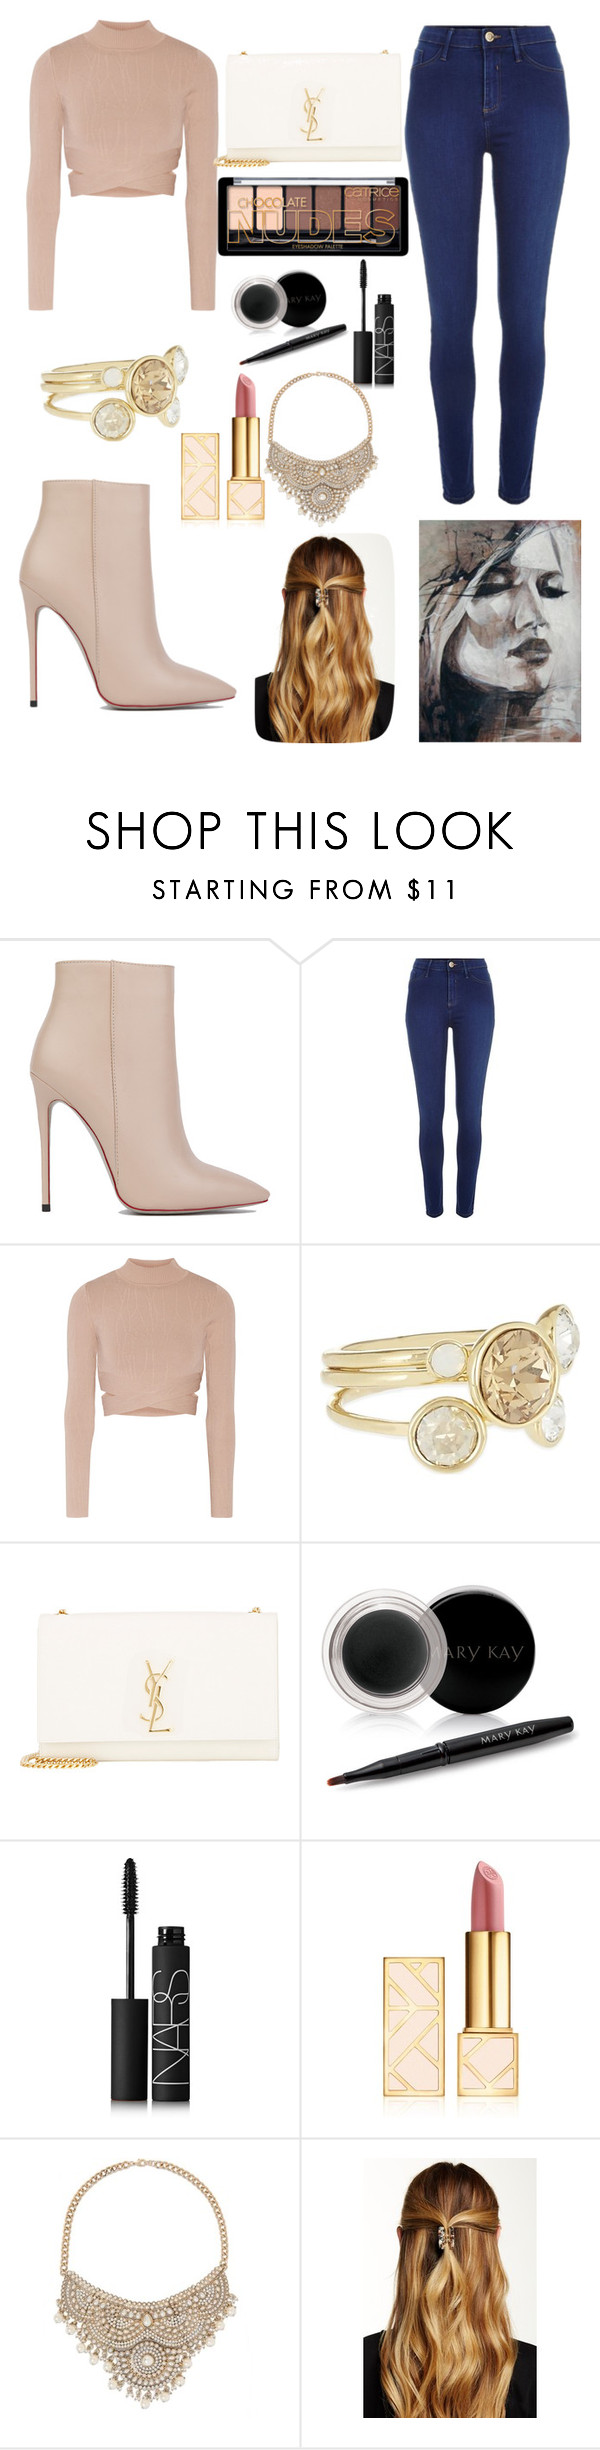 """Have not made a outfit for the last couple of days"" by vanessaa2022 ❤ liked on Polyvore featuring Akira Black Label, River Island, Jonathan Simkhai, Ted Baker, Yves Saint Laurent, Mary Kay, NARS Cosmetics, Tory Burch, Bebe and Natasha Accessories"